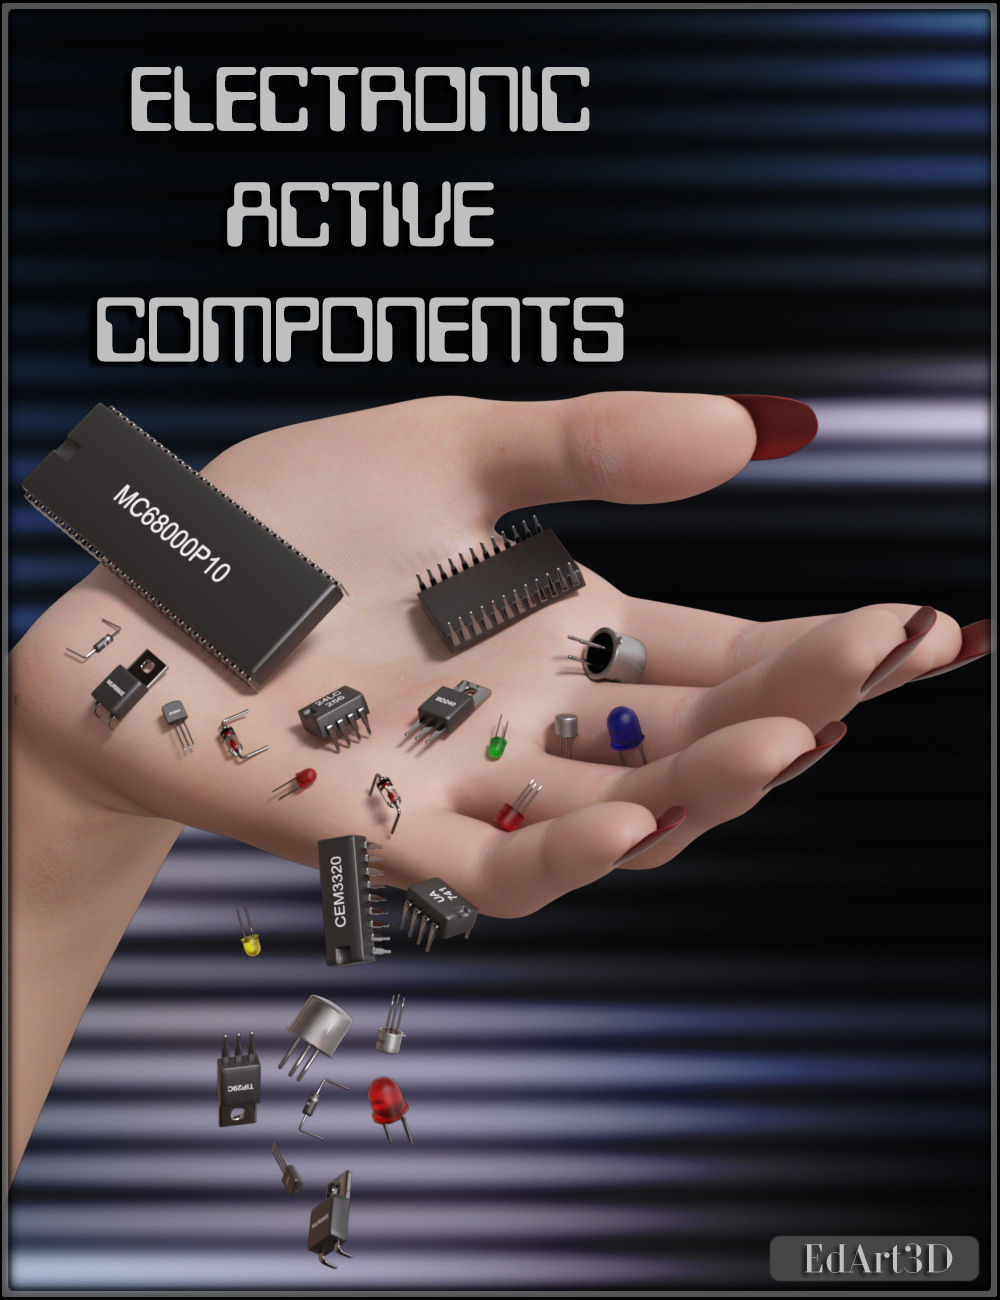 Electronic Active Components by EdArt3D